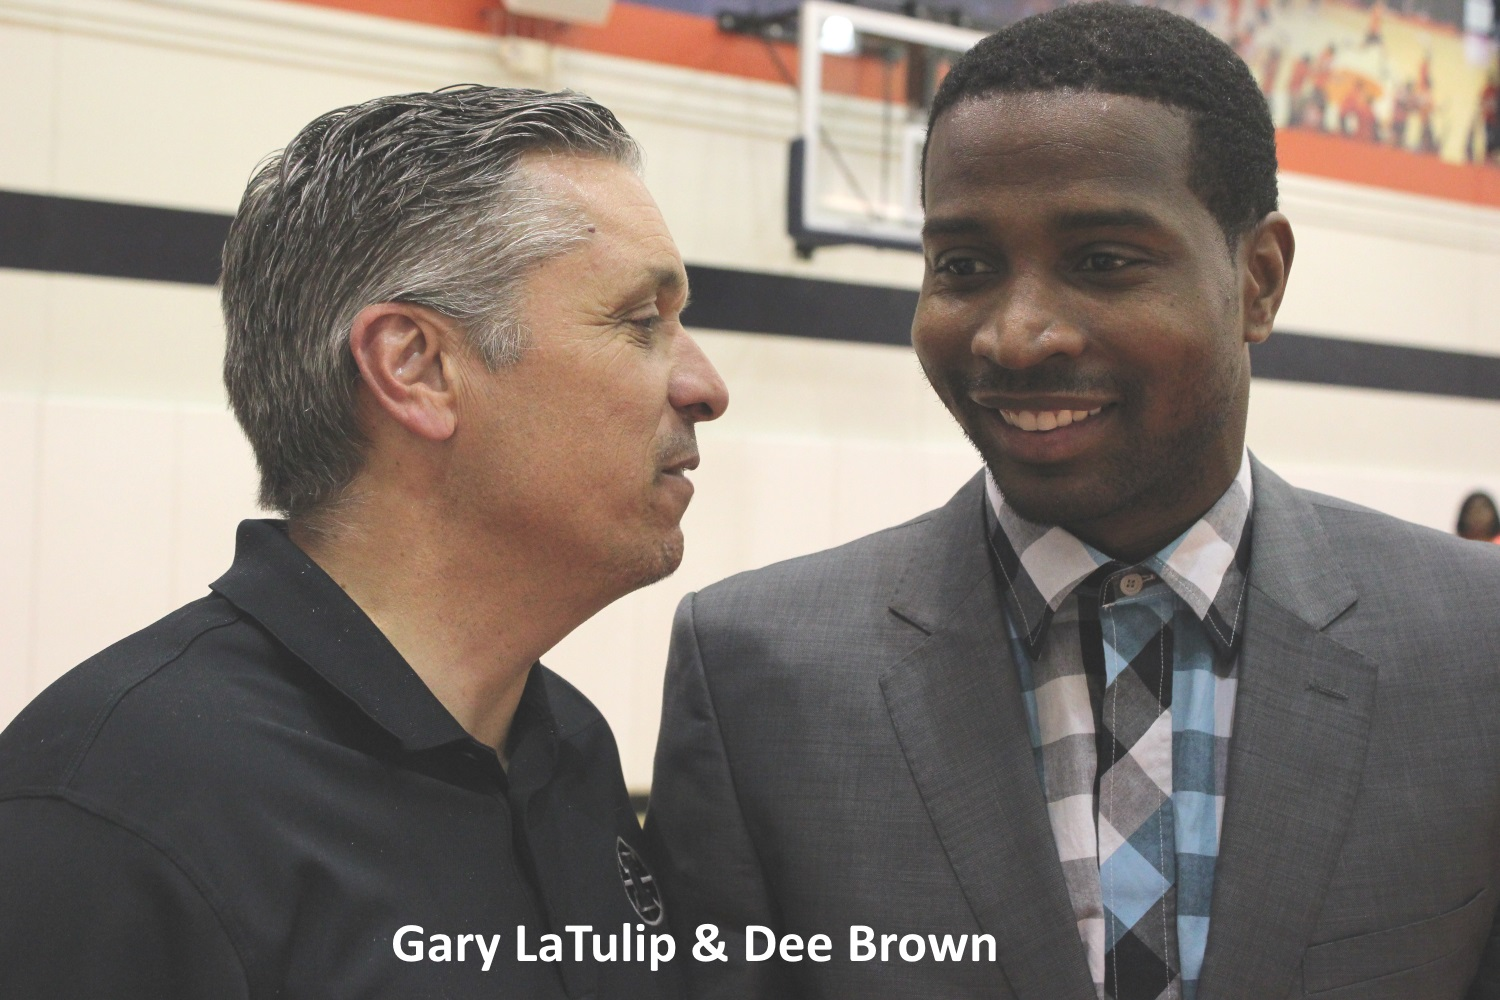 Gary LaTulip and Dee Brown